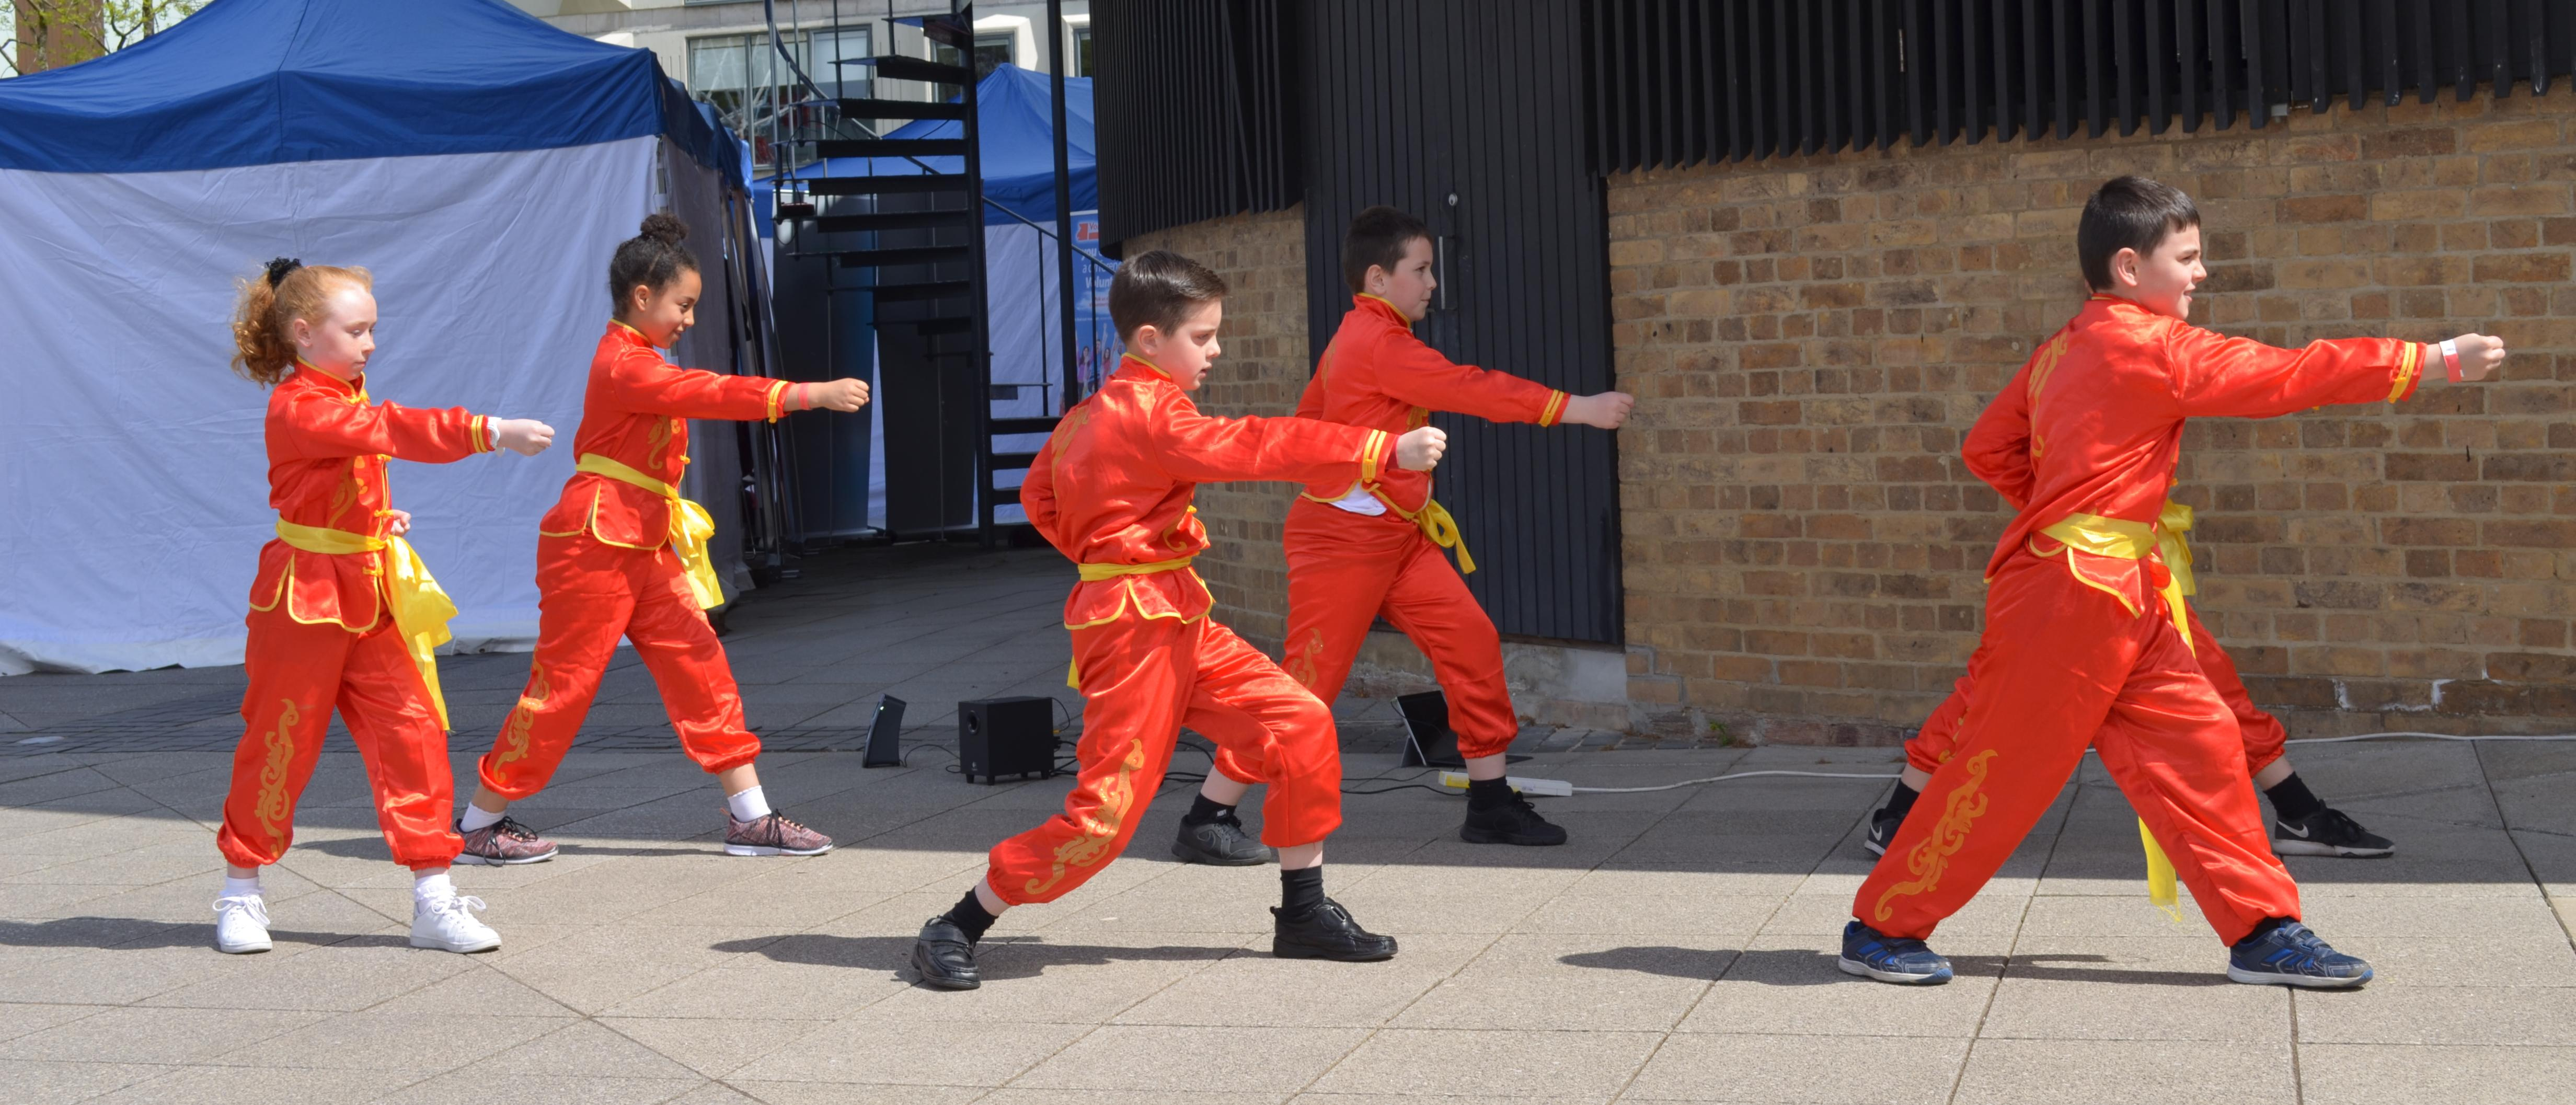 Pupils from a Confucius Classroom perform Wu Shu at Community Day